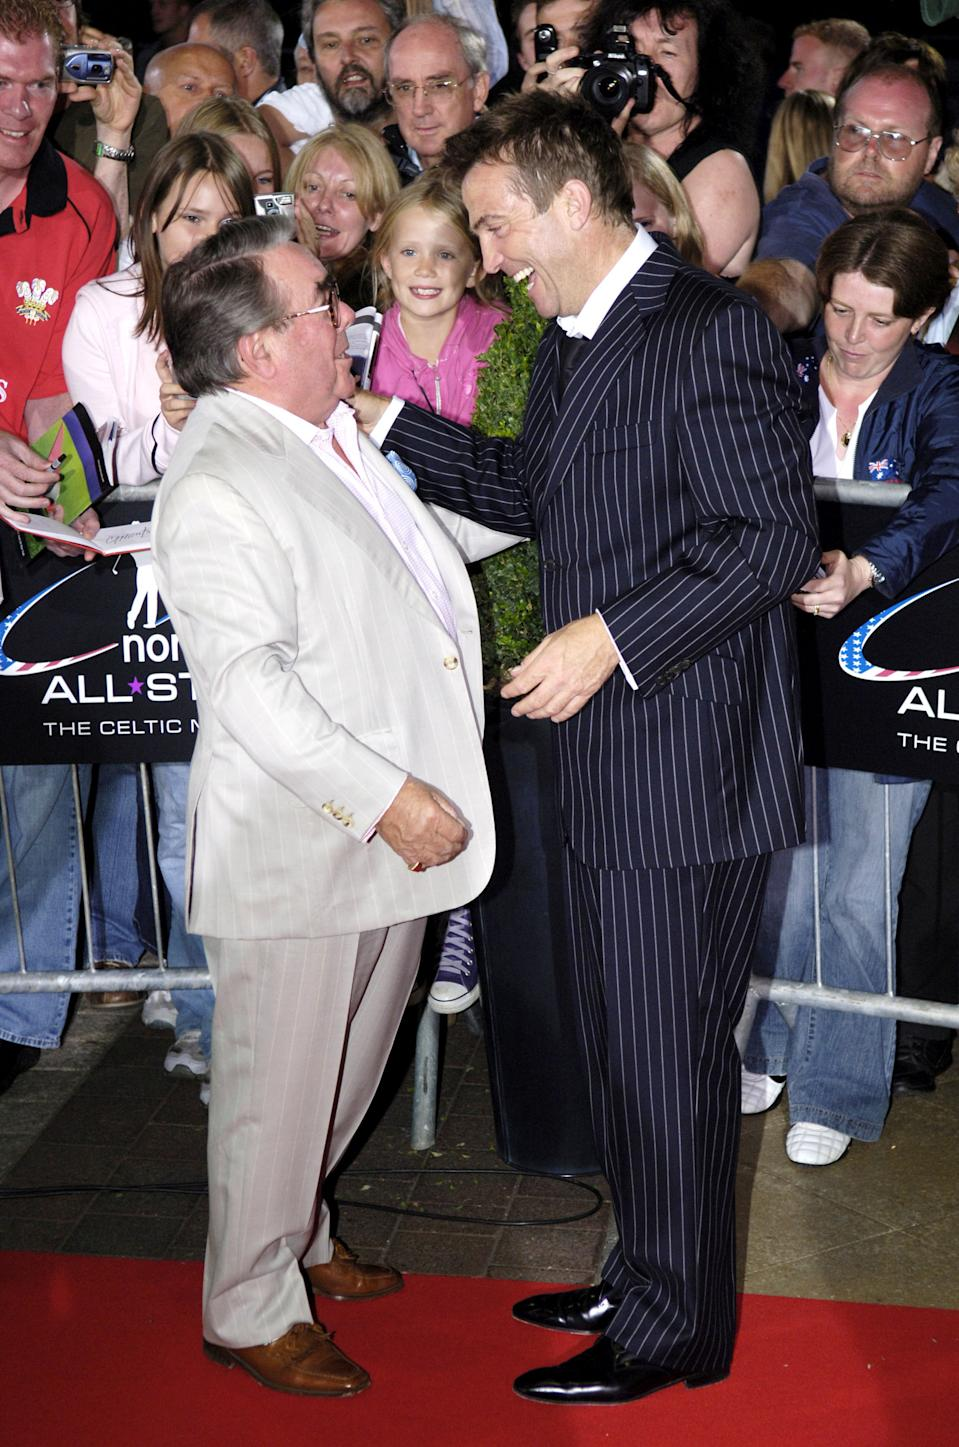 Ronnie Corbett and Bradley Walsh during The Northern Rock All Star Charity Gala - Red Carpet at Celtic Manor Resort in Newport, Great Britain. (Photo by Sandy Young/WireImage)